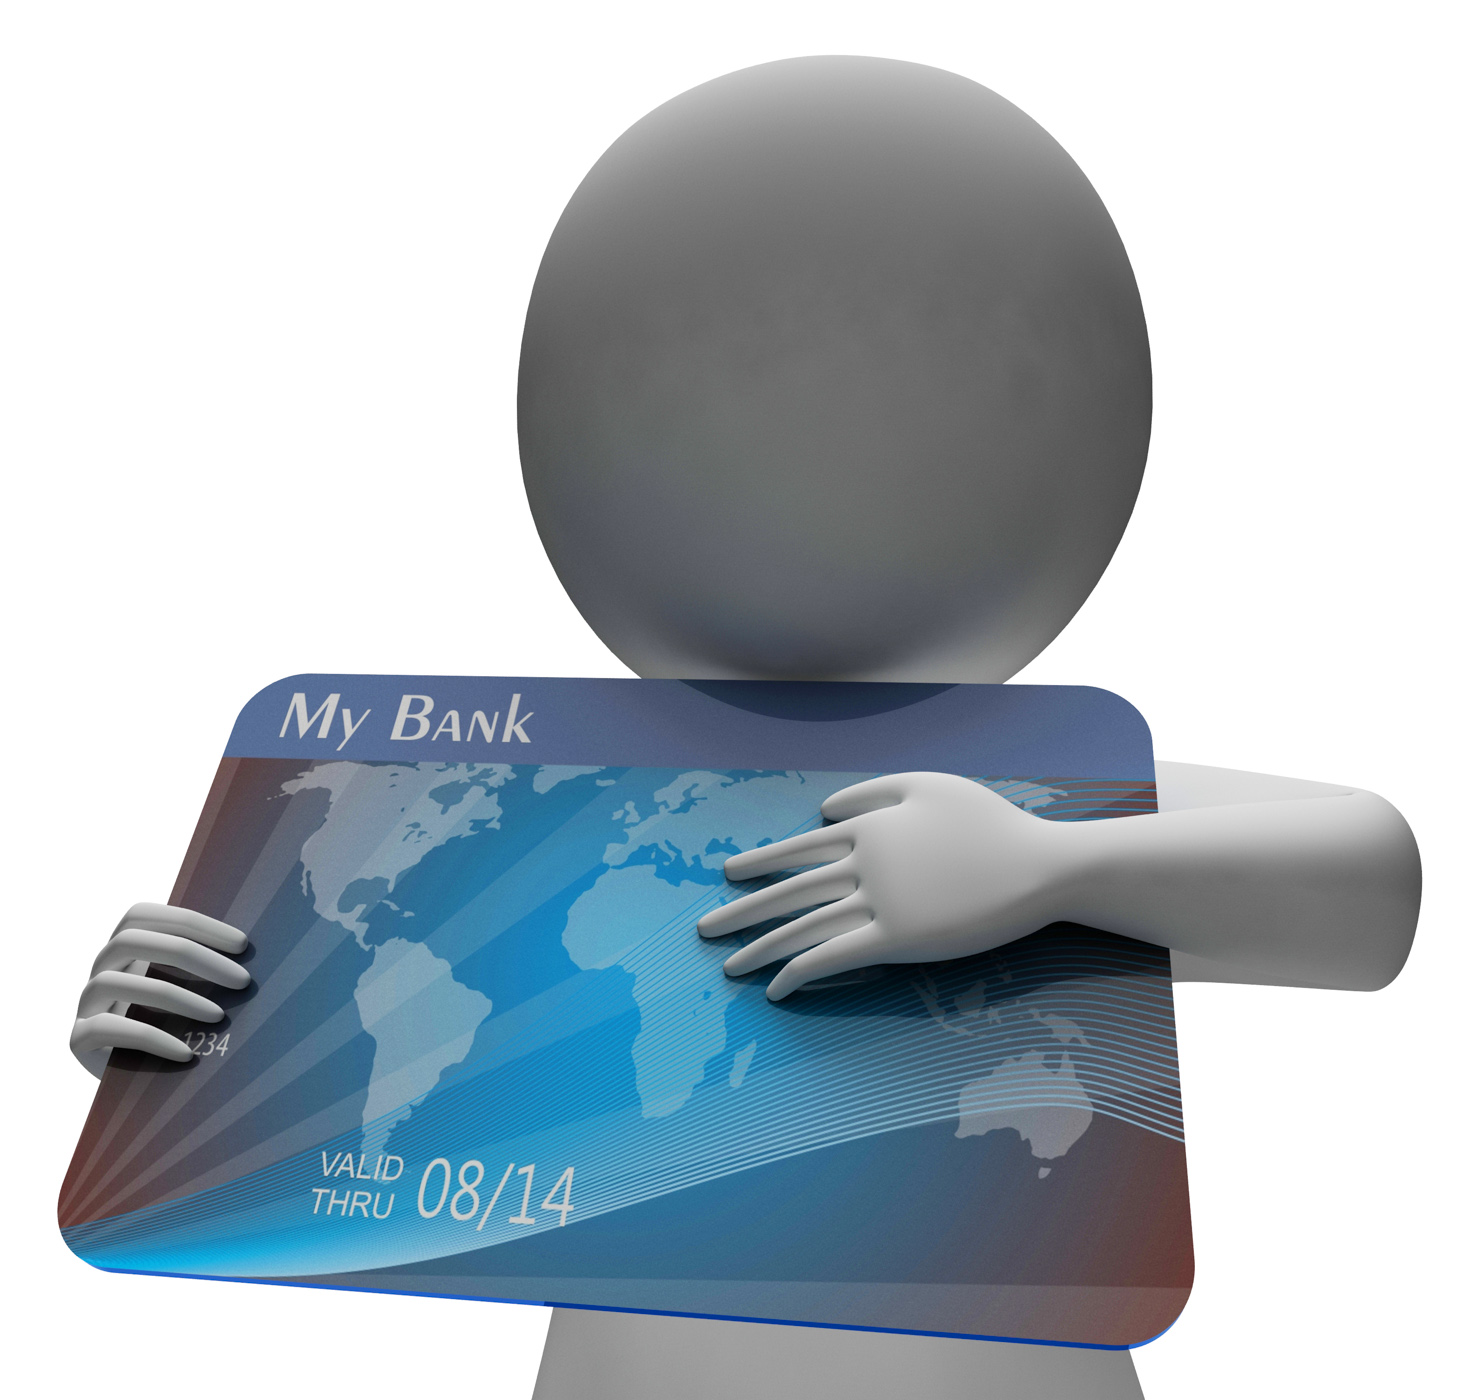 Debit Card Indicates Buying Banking And Indebtedness 3d Rendering, 3drendering, Problem, Indebtedness, Loan, HQ Photo